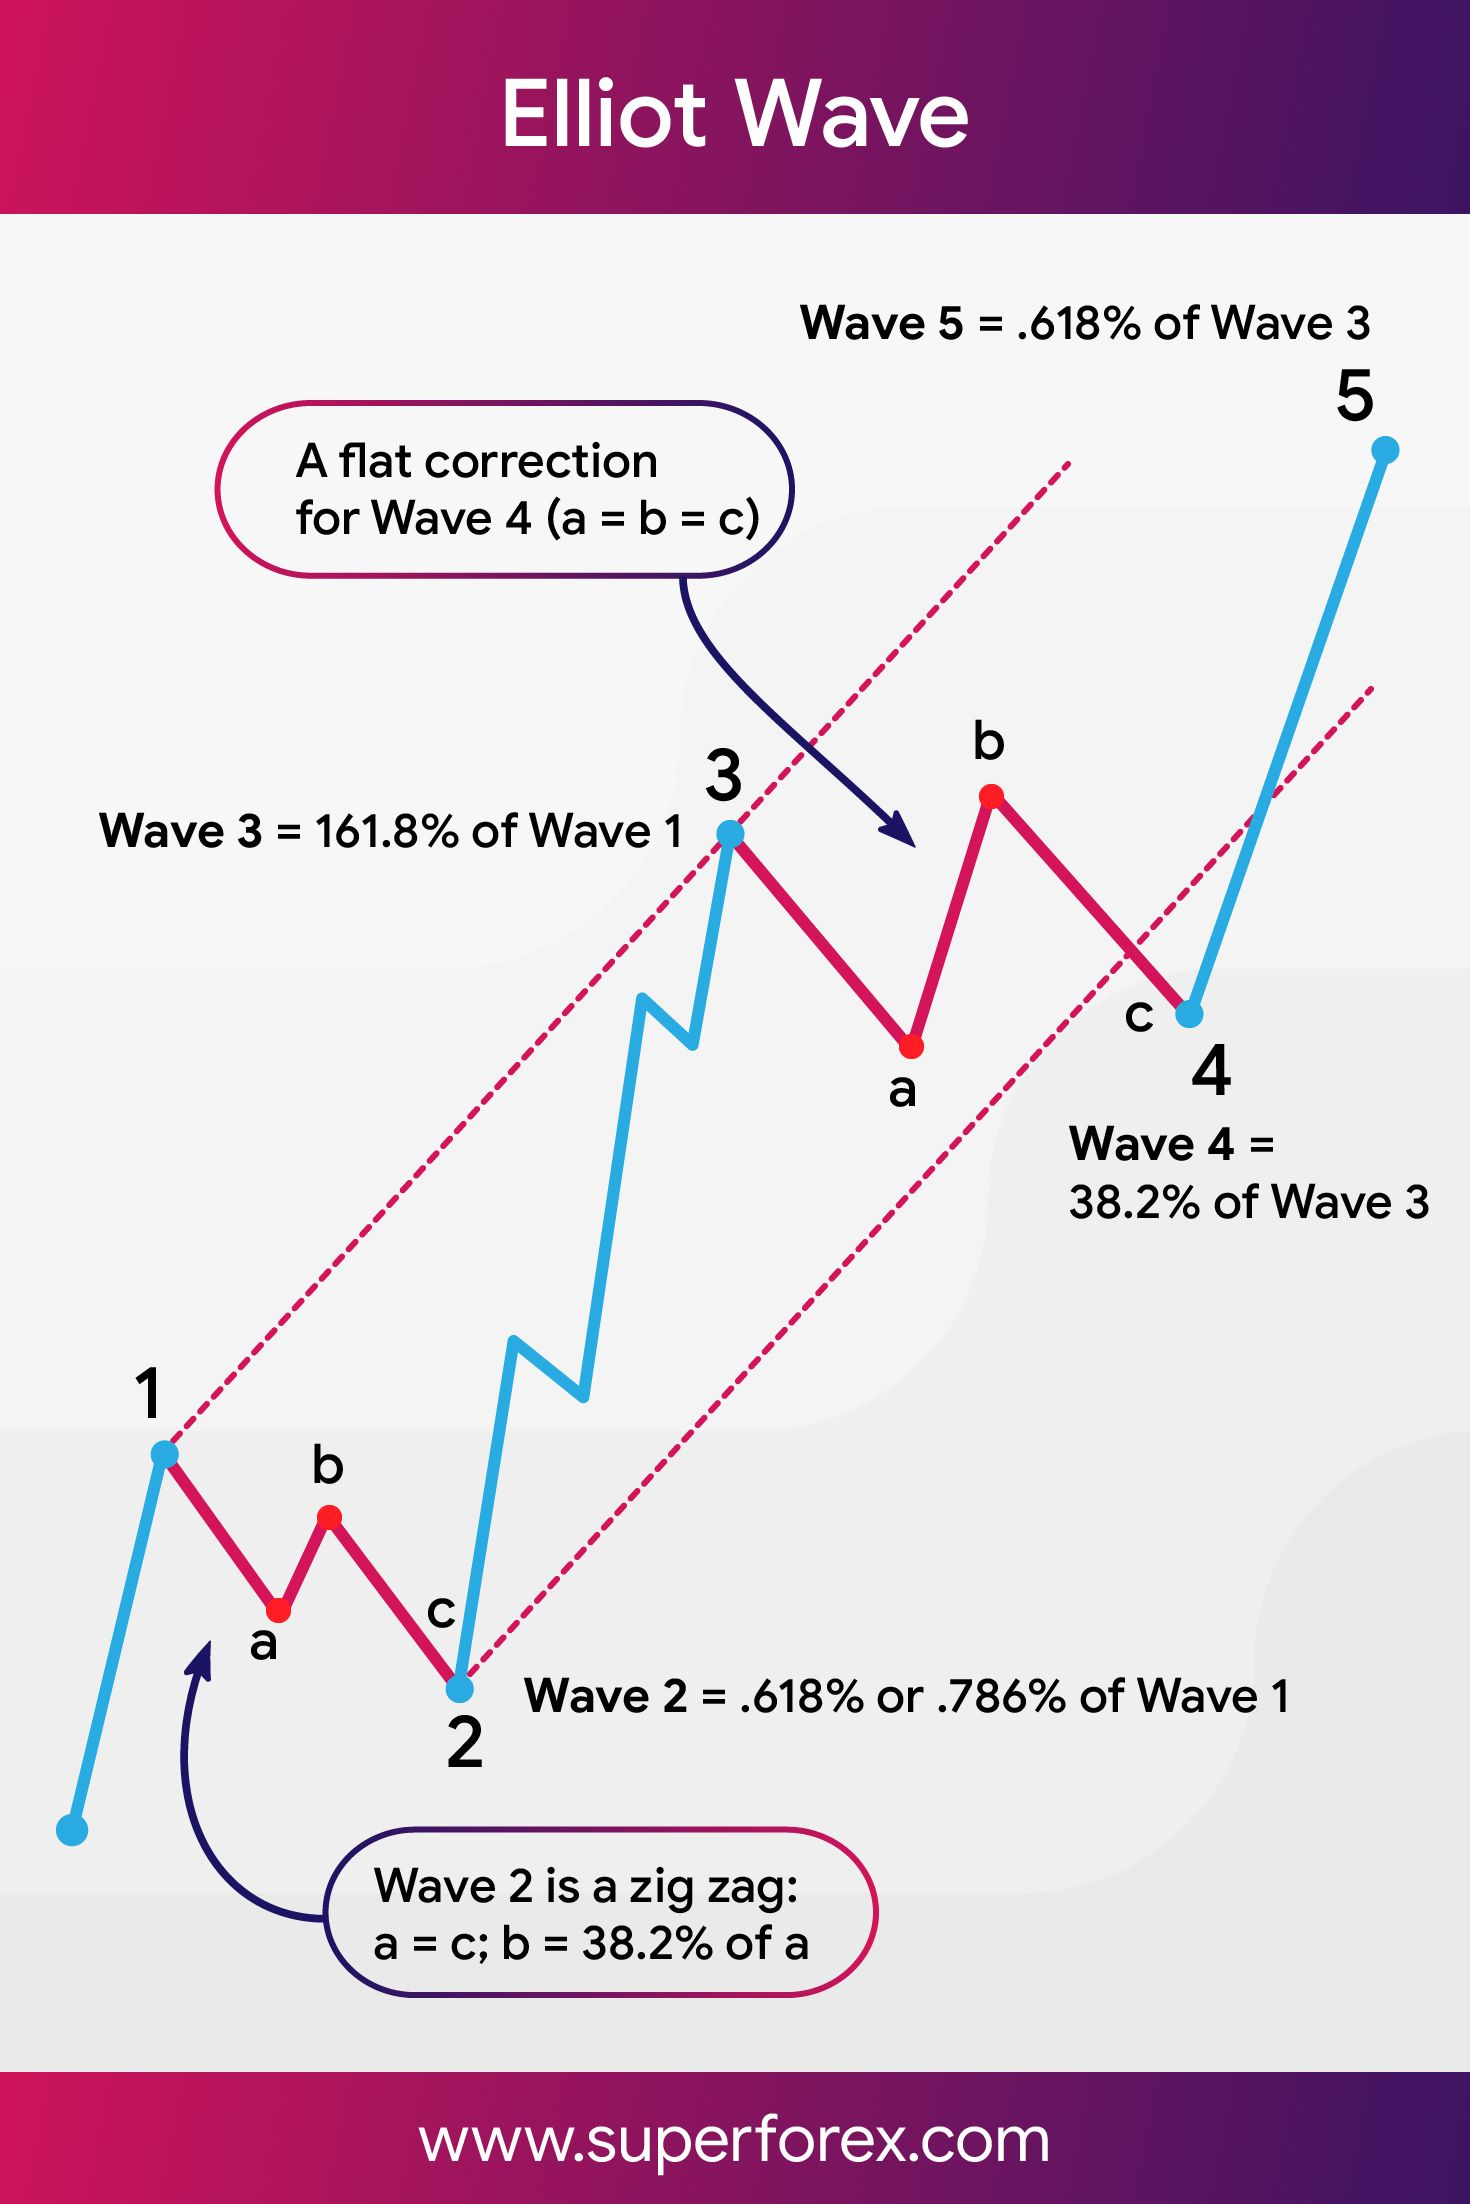 Elloit Wave Trading Charts Stock Trading Strategies Wave Theory